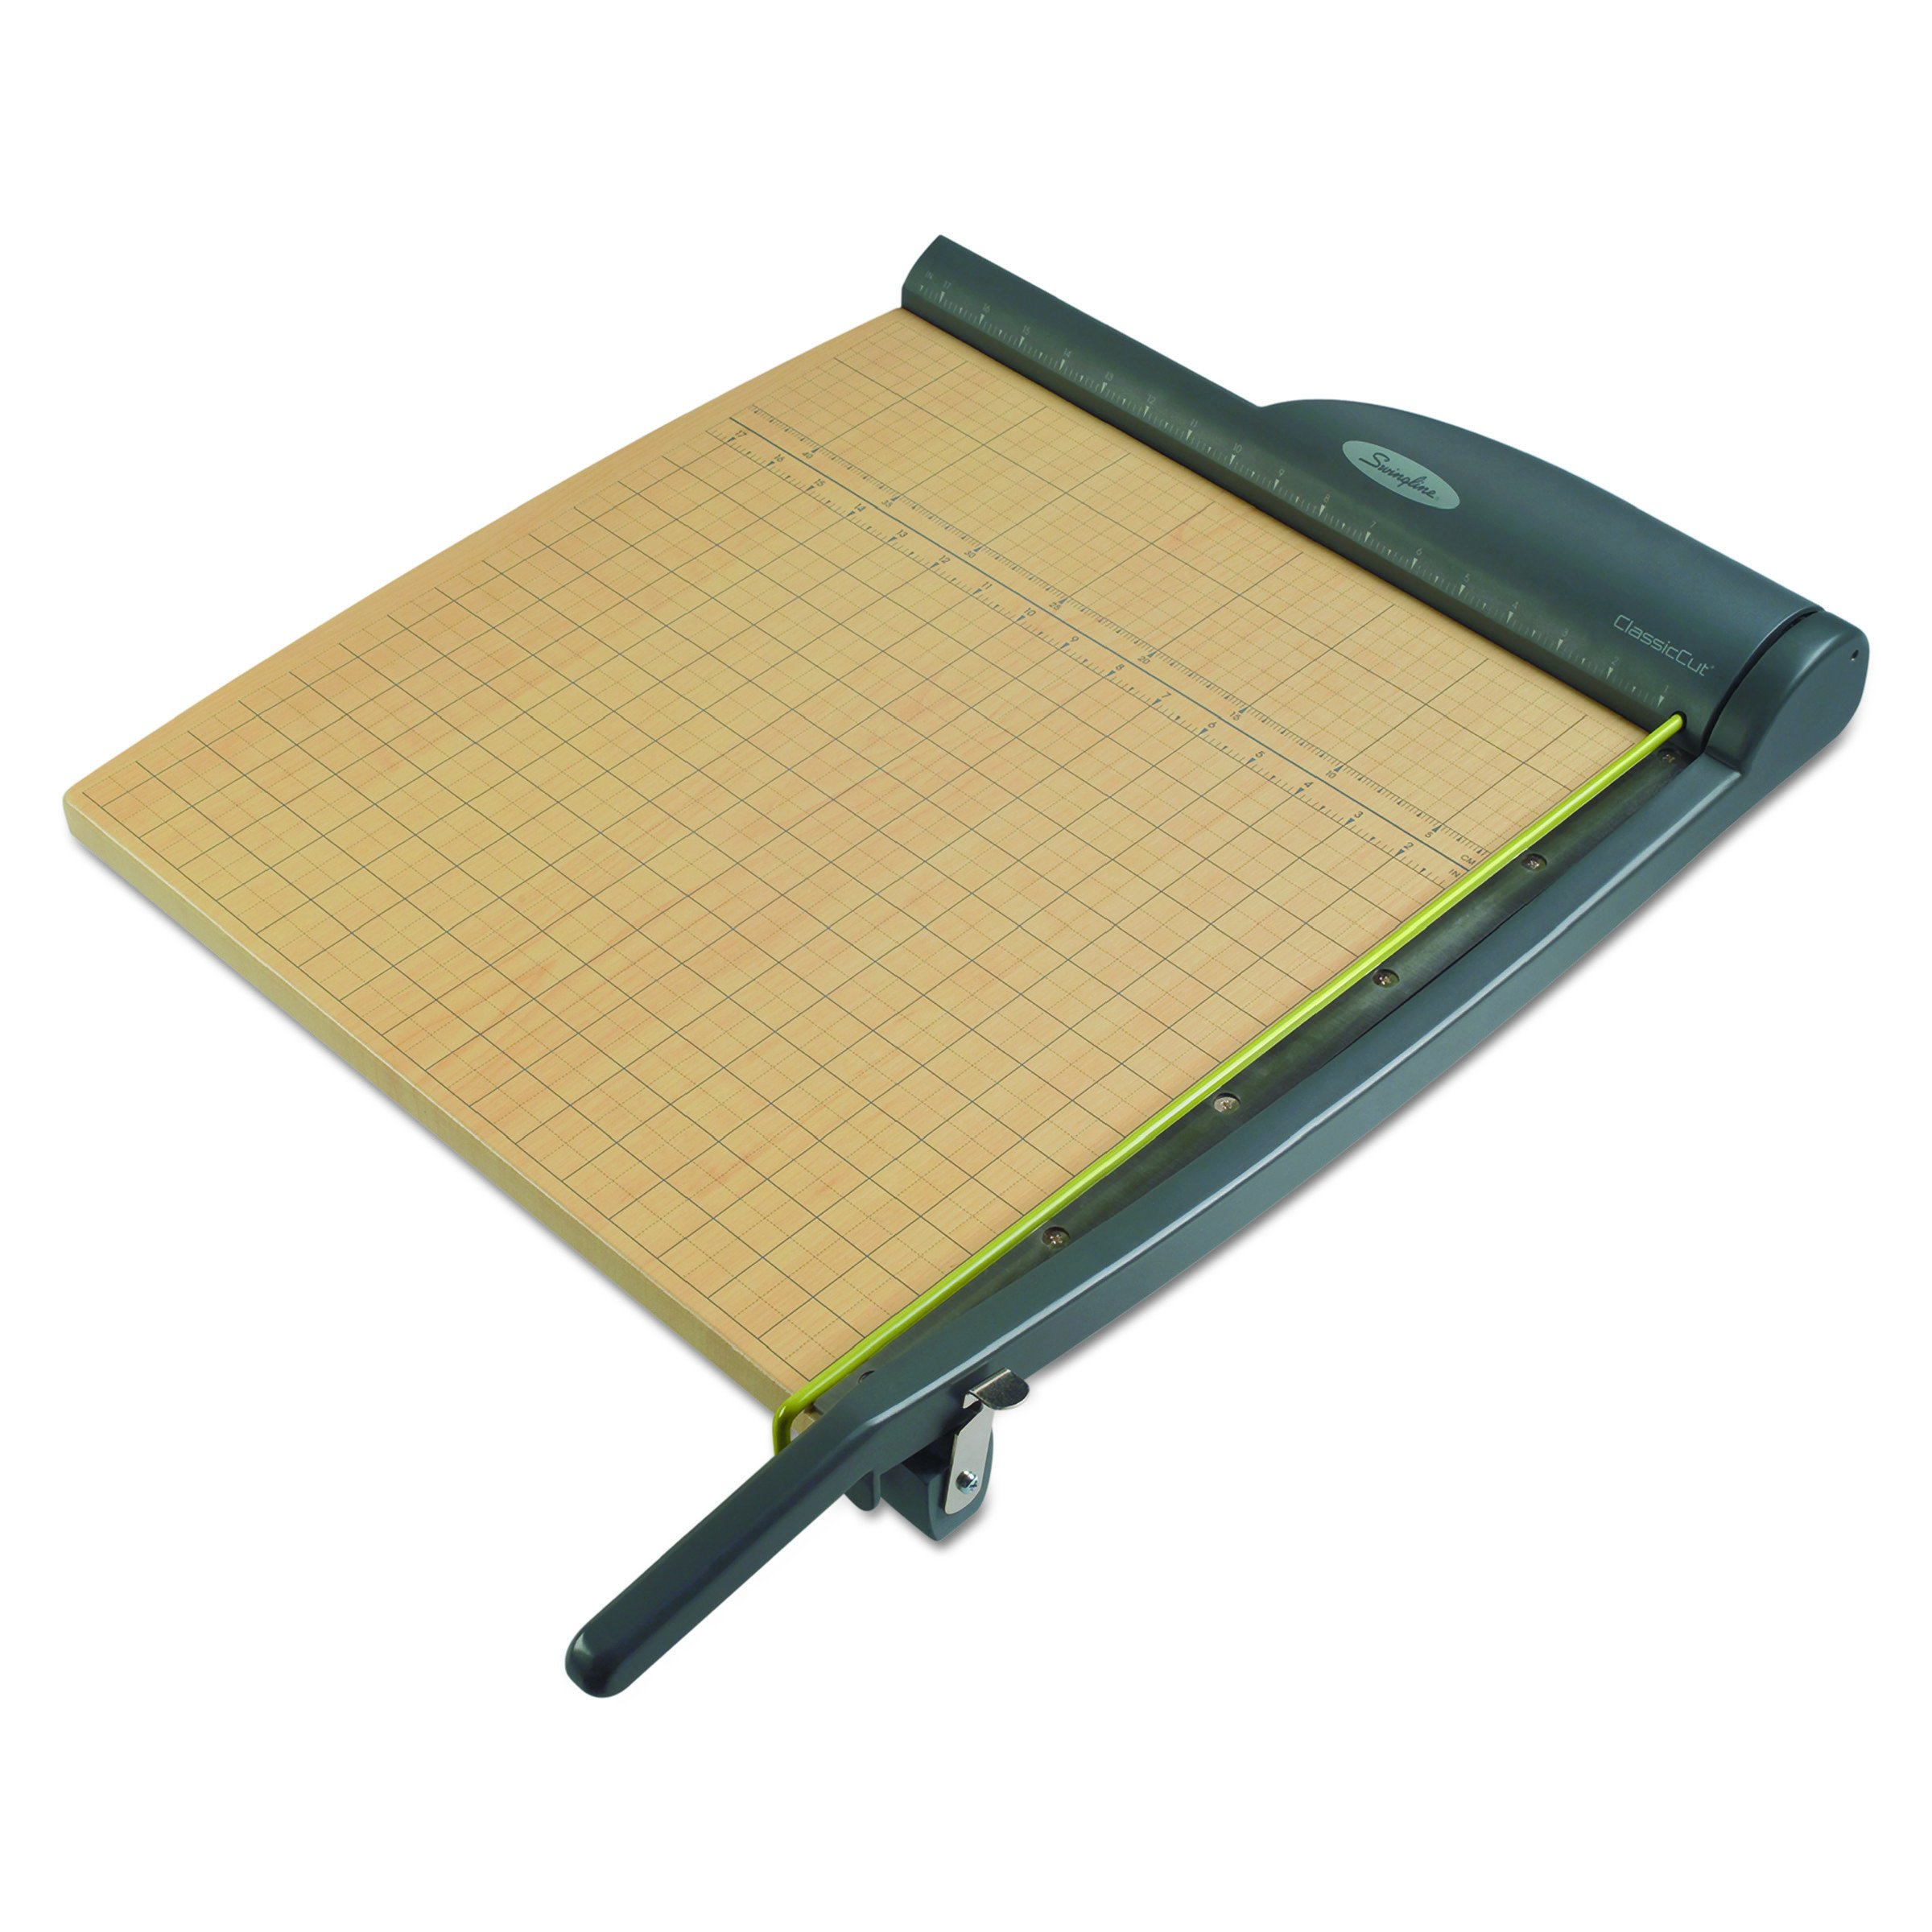 Swingline Paper Trimmer, Guillotine Paper Cutter, 18'' Cut Length, 15 Sheets Capacity, ClassicCut Pro (9118) by Swingline